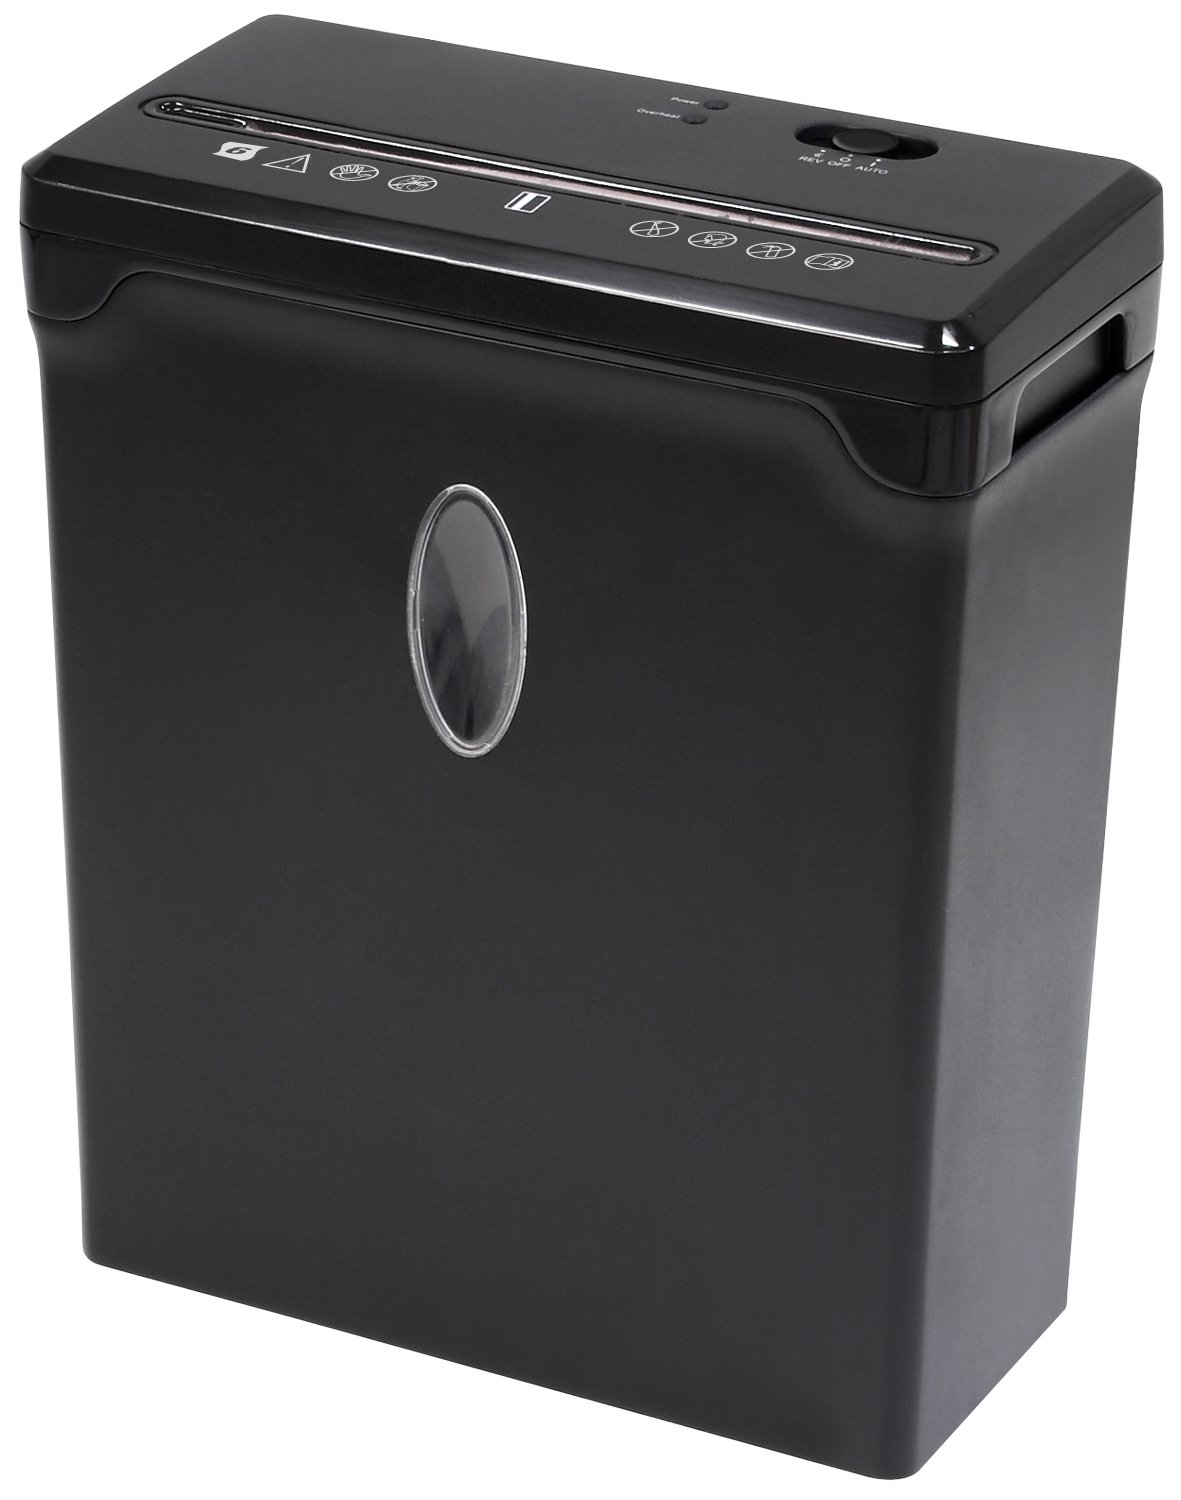 Sentinel FX61B 6-Sheet High Security Cross-Cut Paper/Credit Card Shredder with 2.4 Gallon Waste Basket Shredder Shredder by Sentinel Shredders